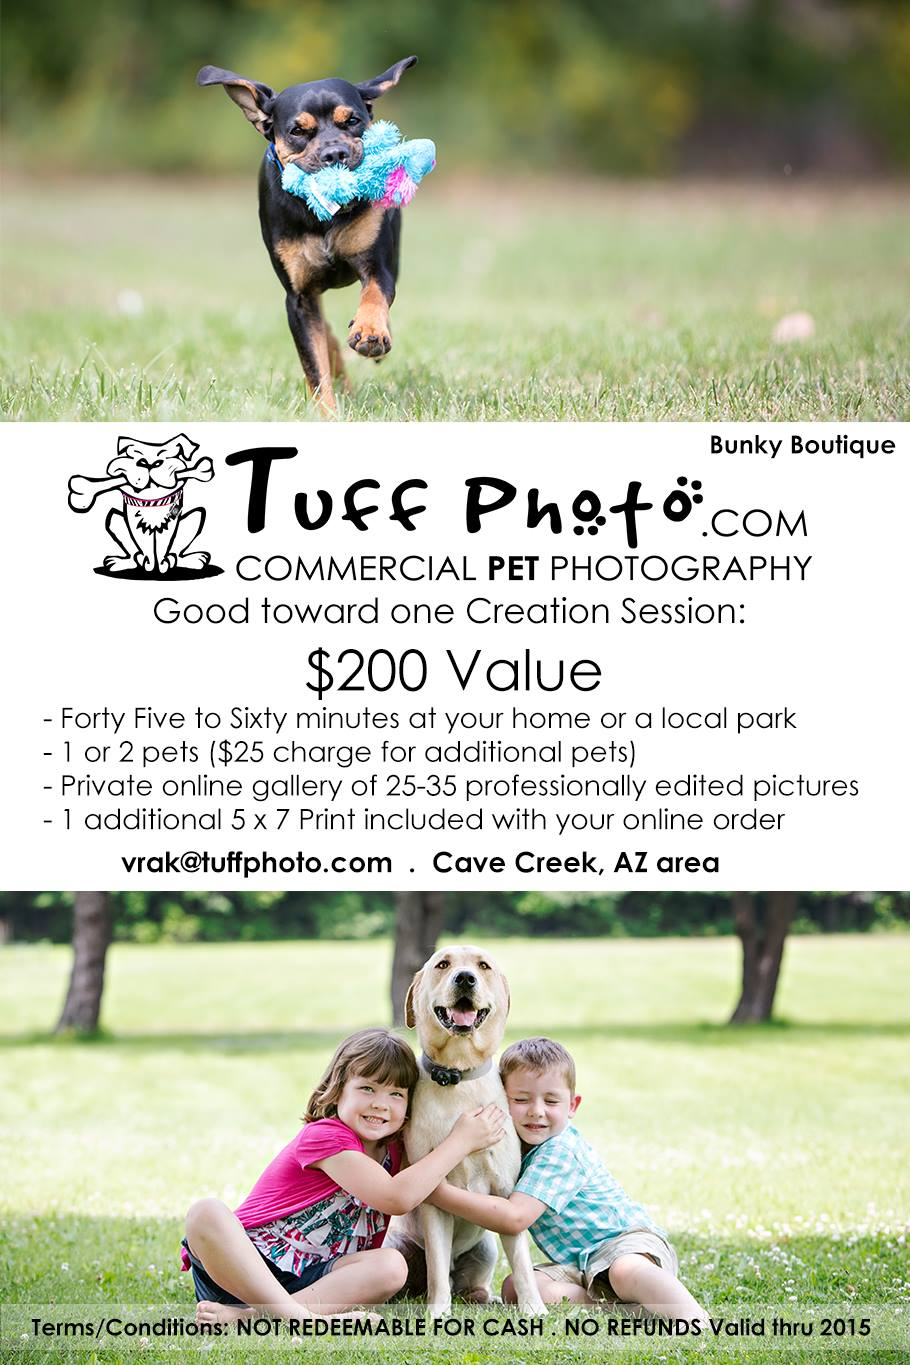 TUFF PHOTO is donating one pet photo session for the Dog Days of Summer Raffle!